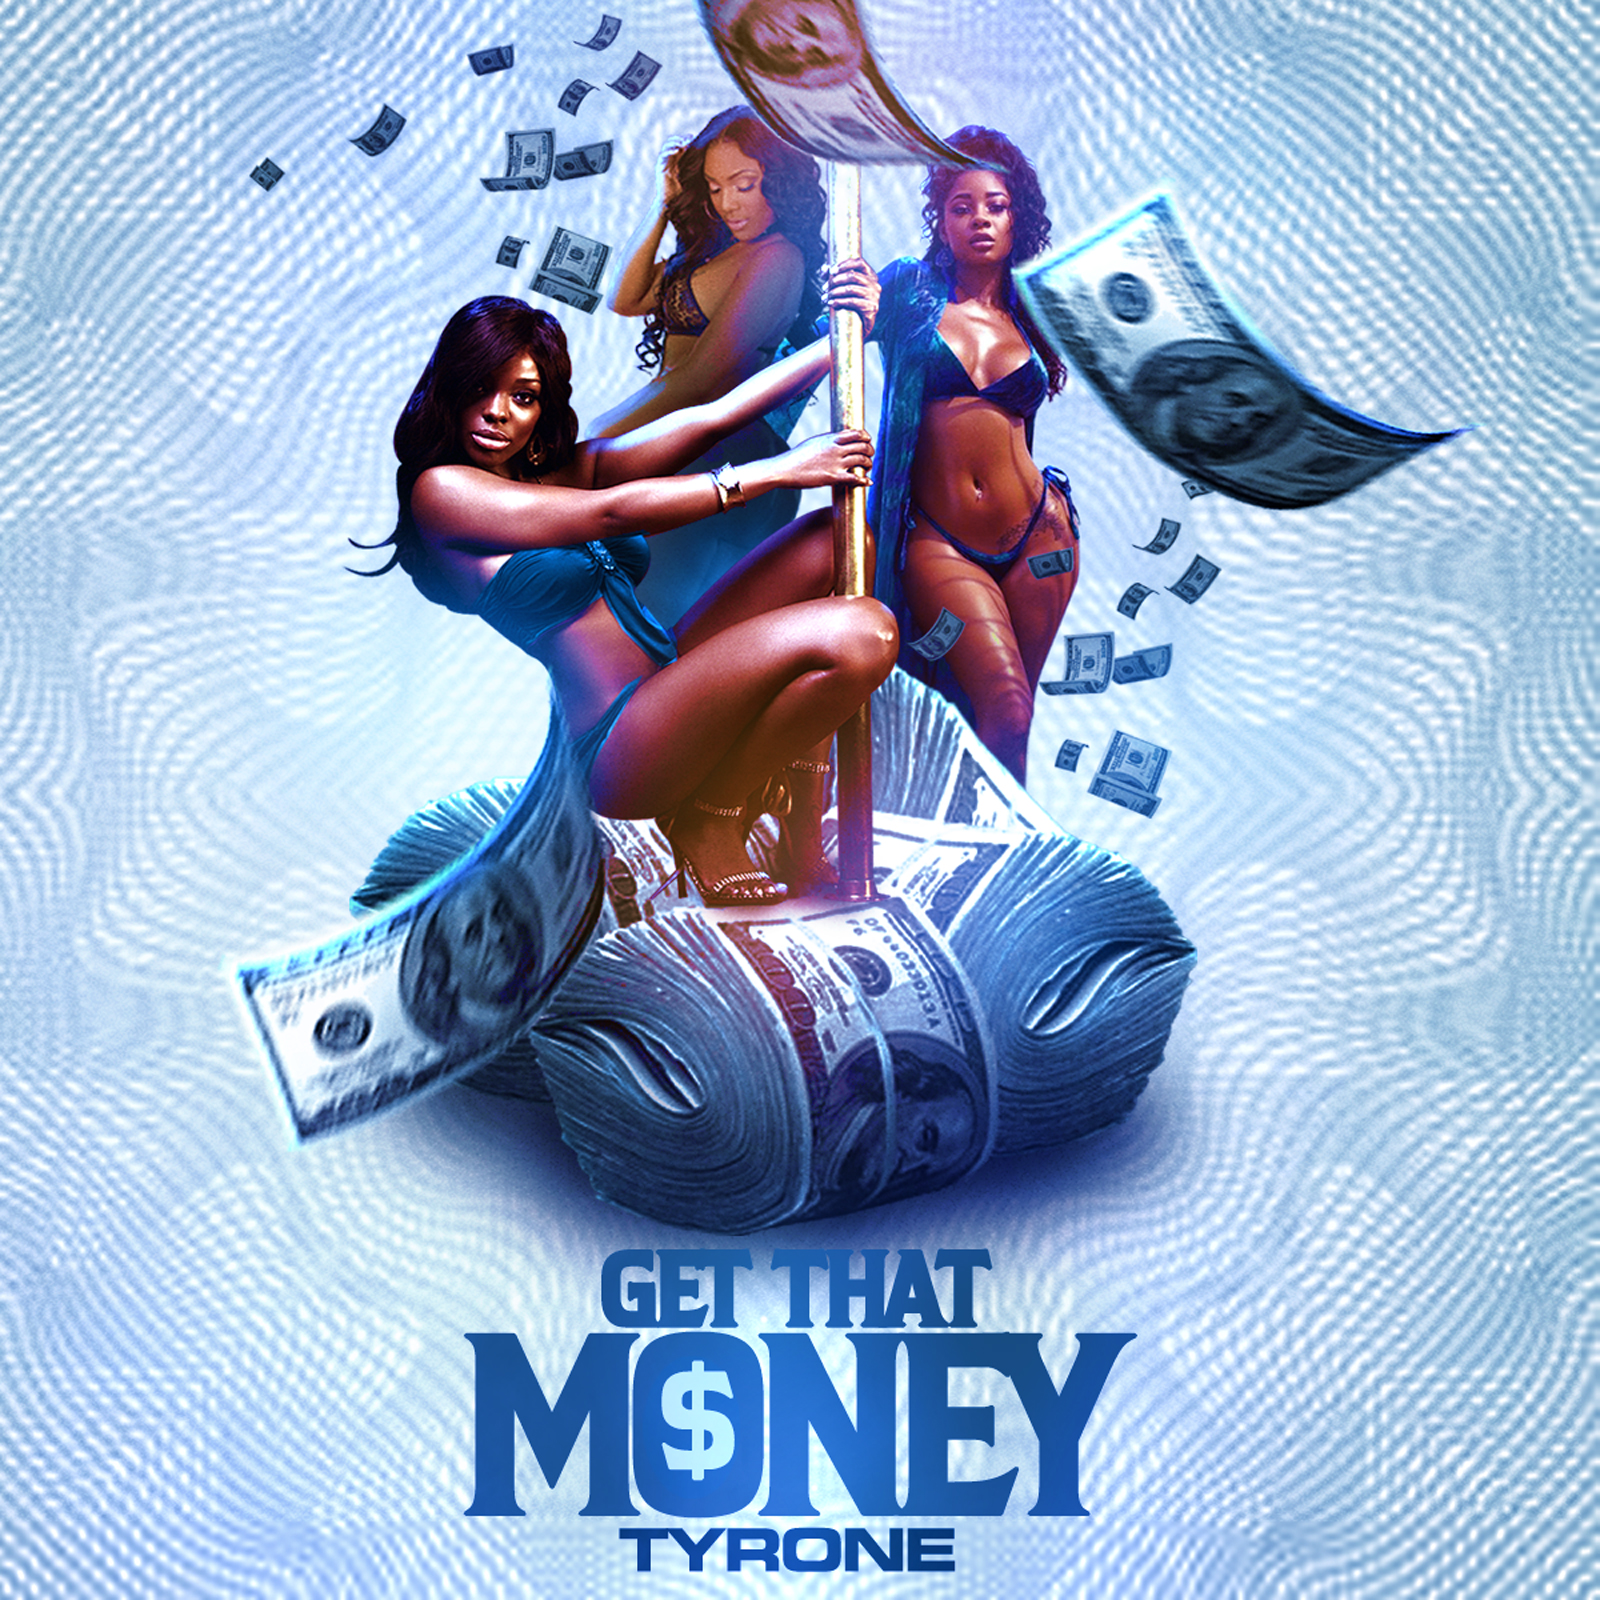 TYRONE - GET THAT MONEY [COVER ART - large].jpg